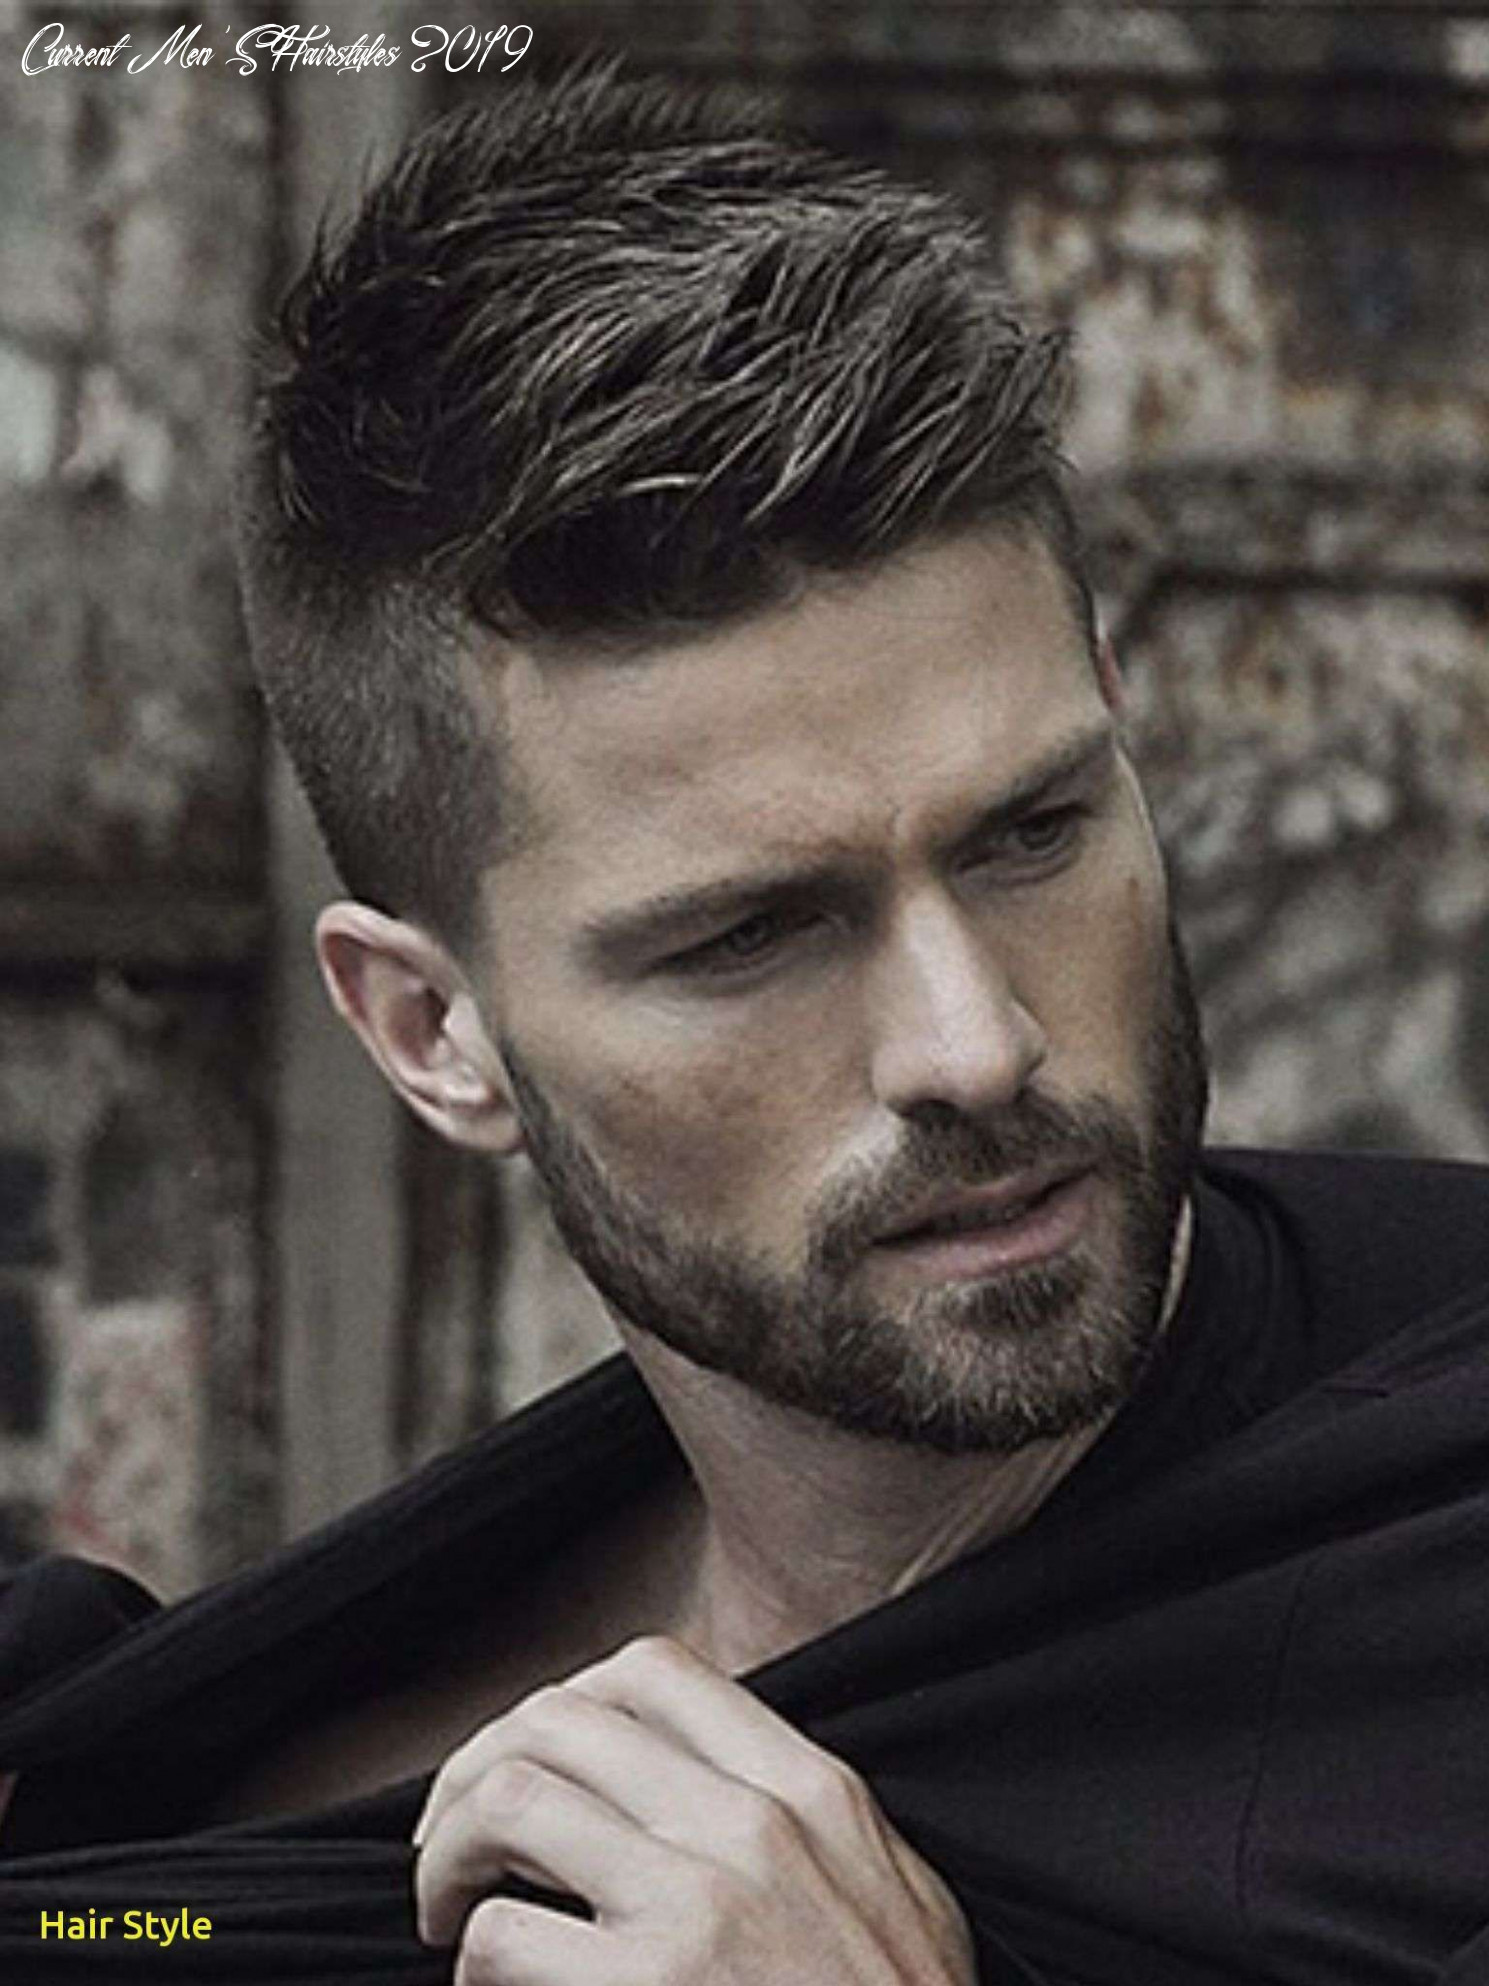 Brassy hair type and also style man pic fresh mens new hairstyle s